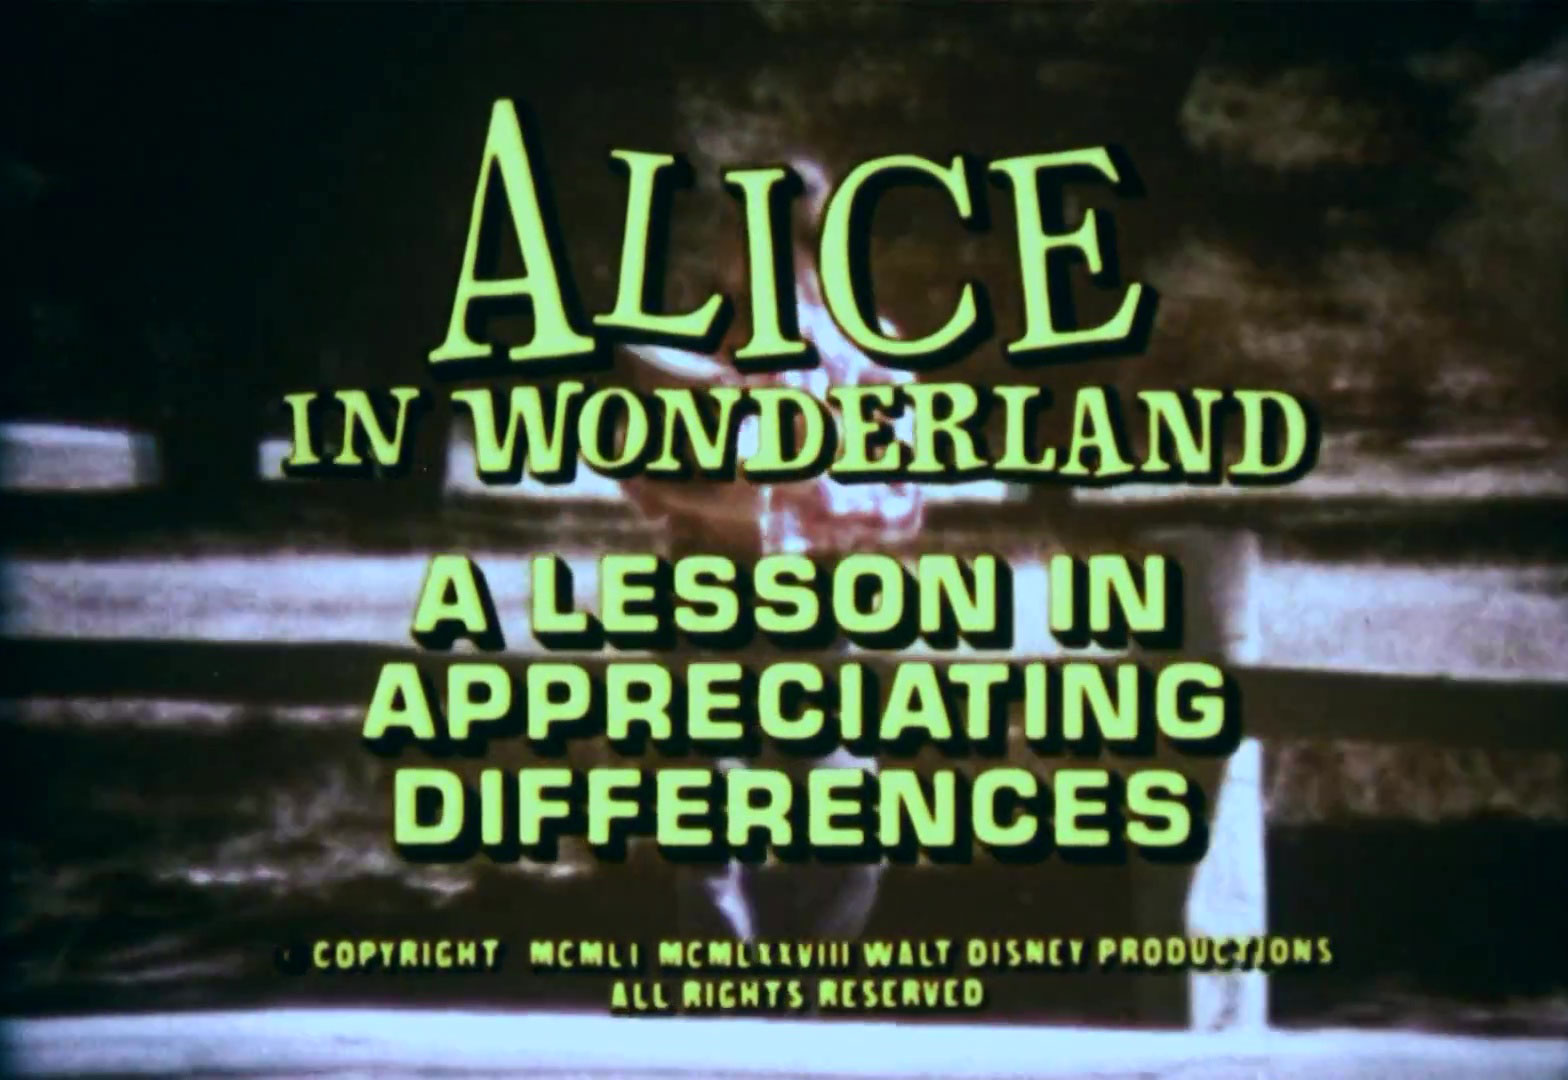 affiche poster alice wonderland lesson appreciating differences disney